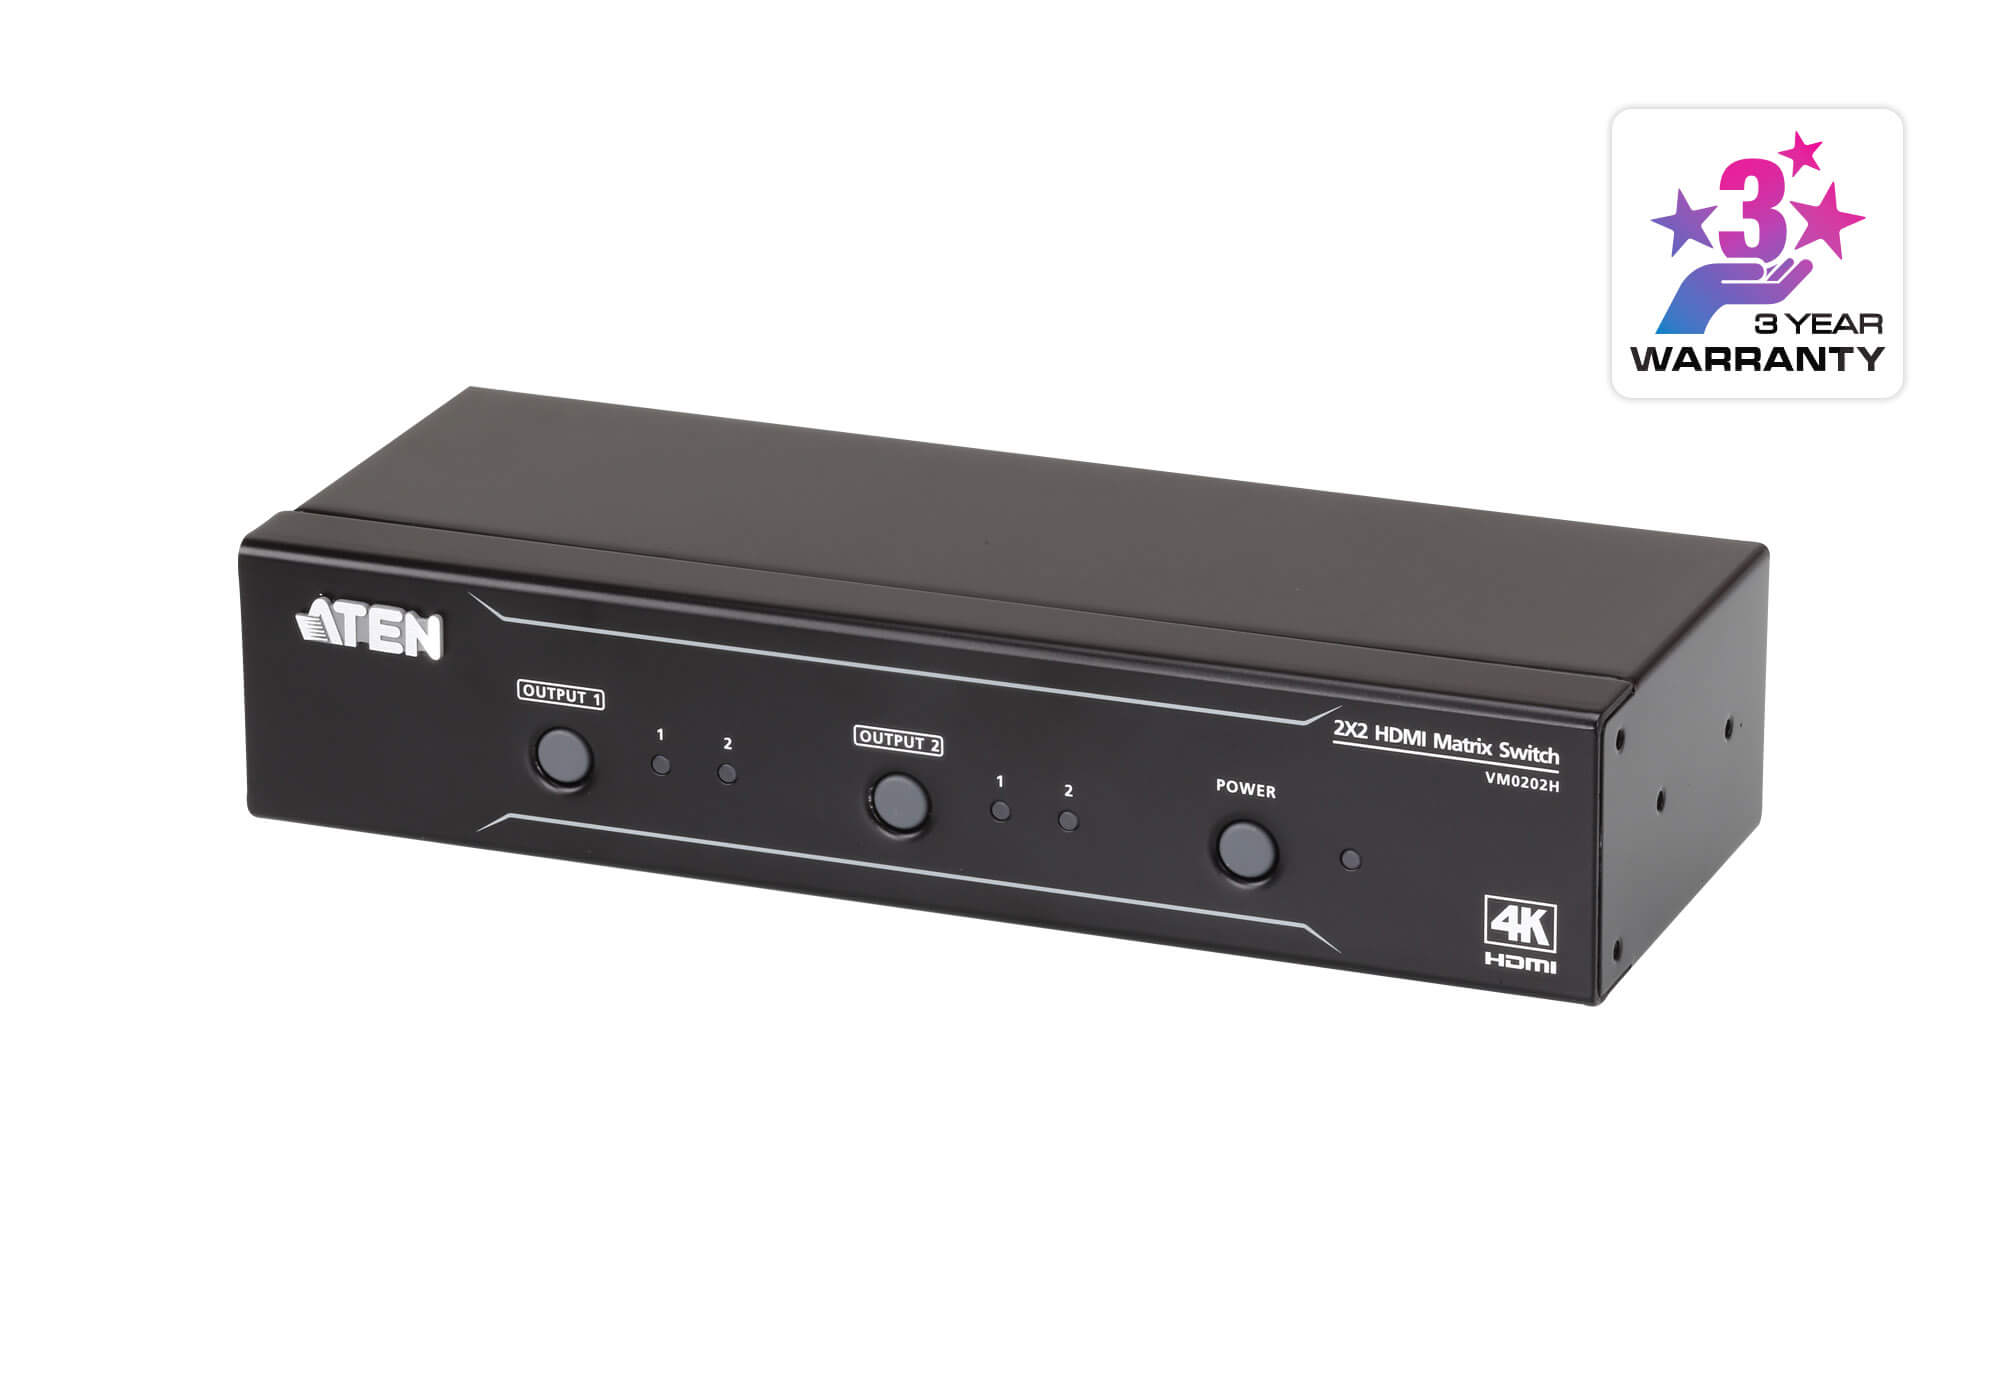 Aten 2x2 4K HDMI Matrix, control via front-panel pushbuttons, IR remote and RS232 control, EDID management